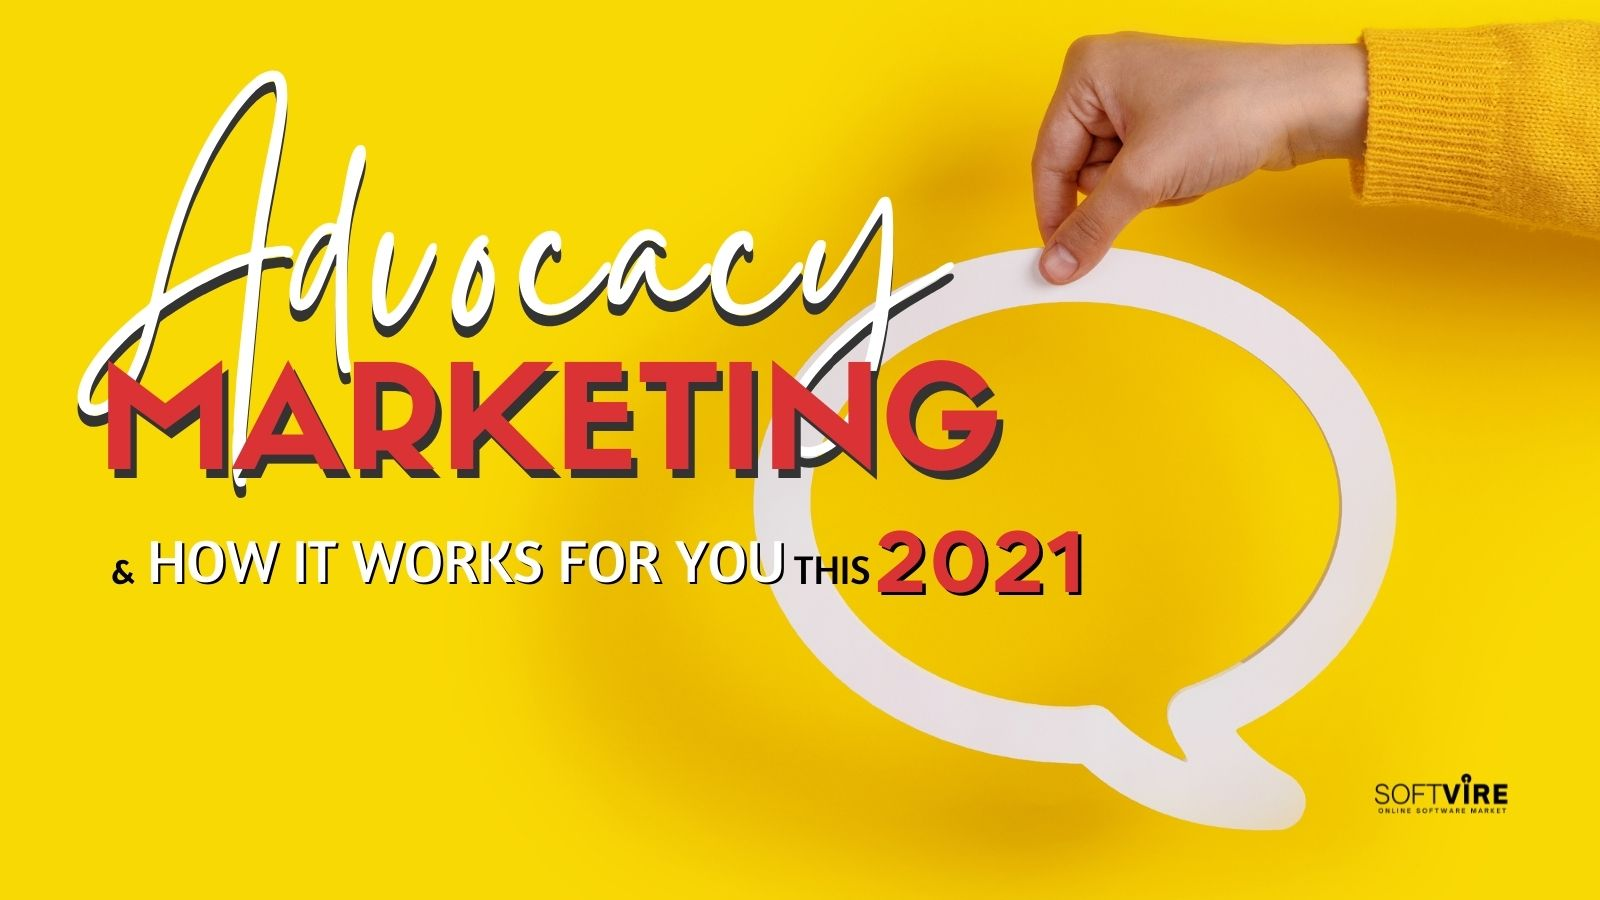 Advocacy Marketing and How it Works for You this 2021 - Banner - Softvire Global Market